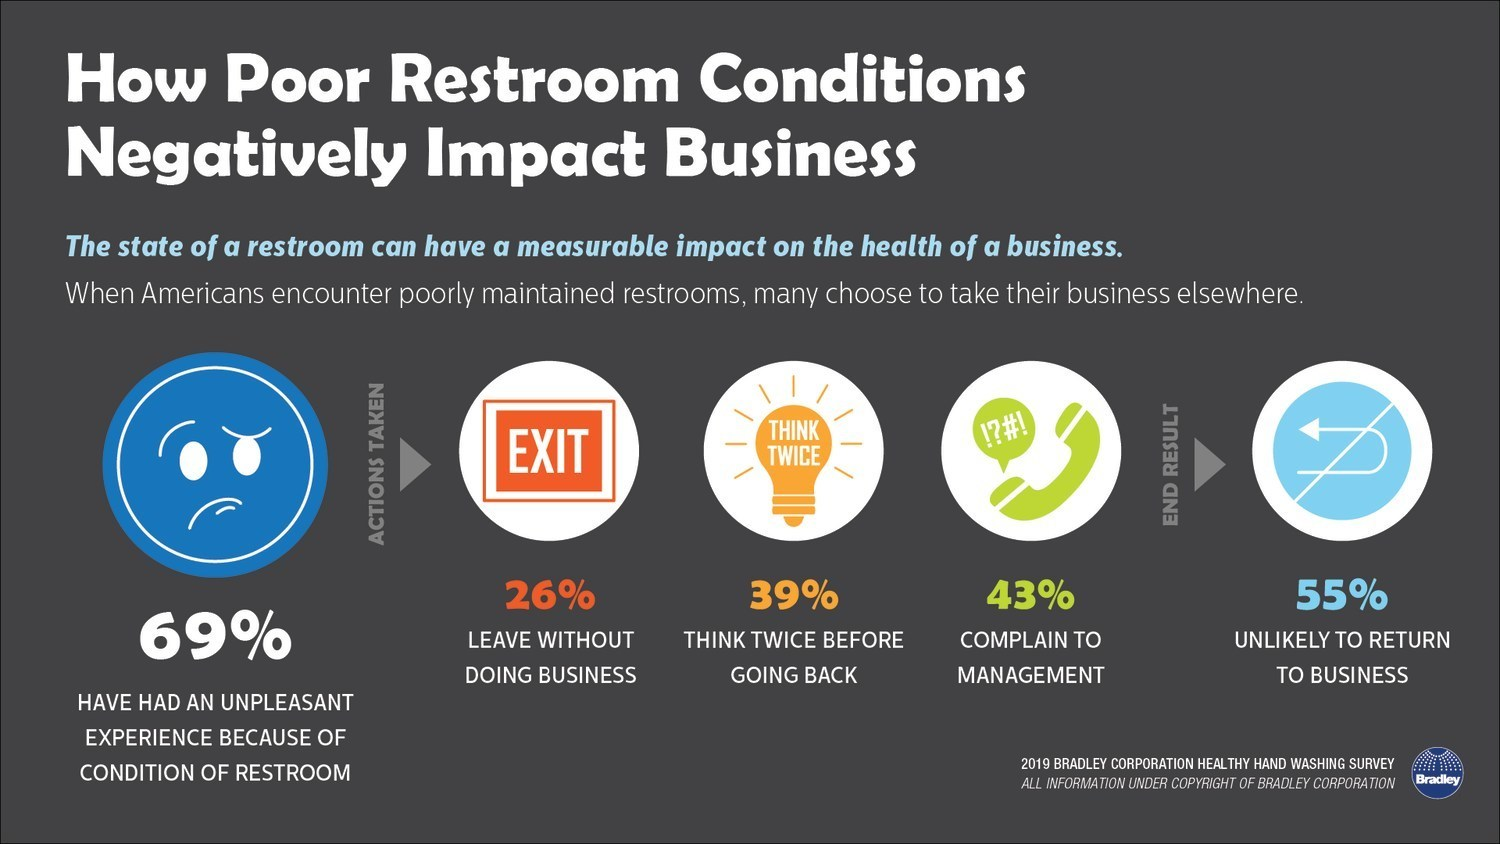 According to the Healthy Hand Washing Survey by Bradley Corp., poor restroom conditions can negatively impact a business.